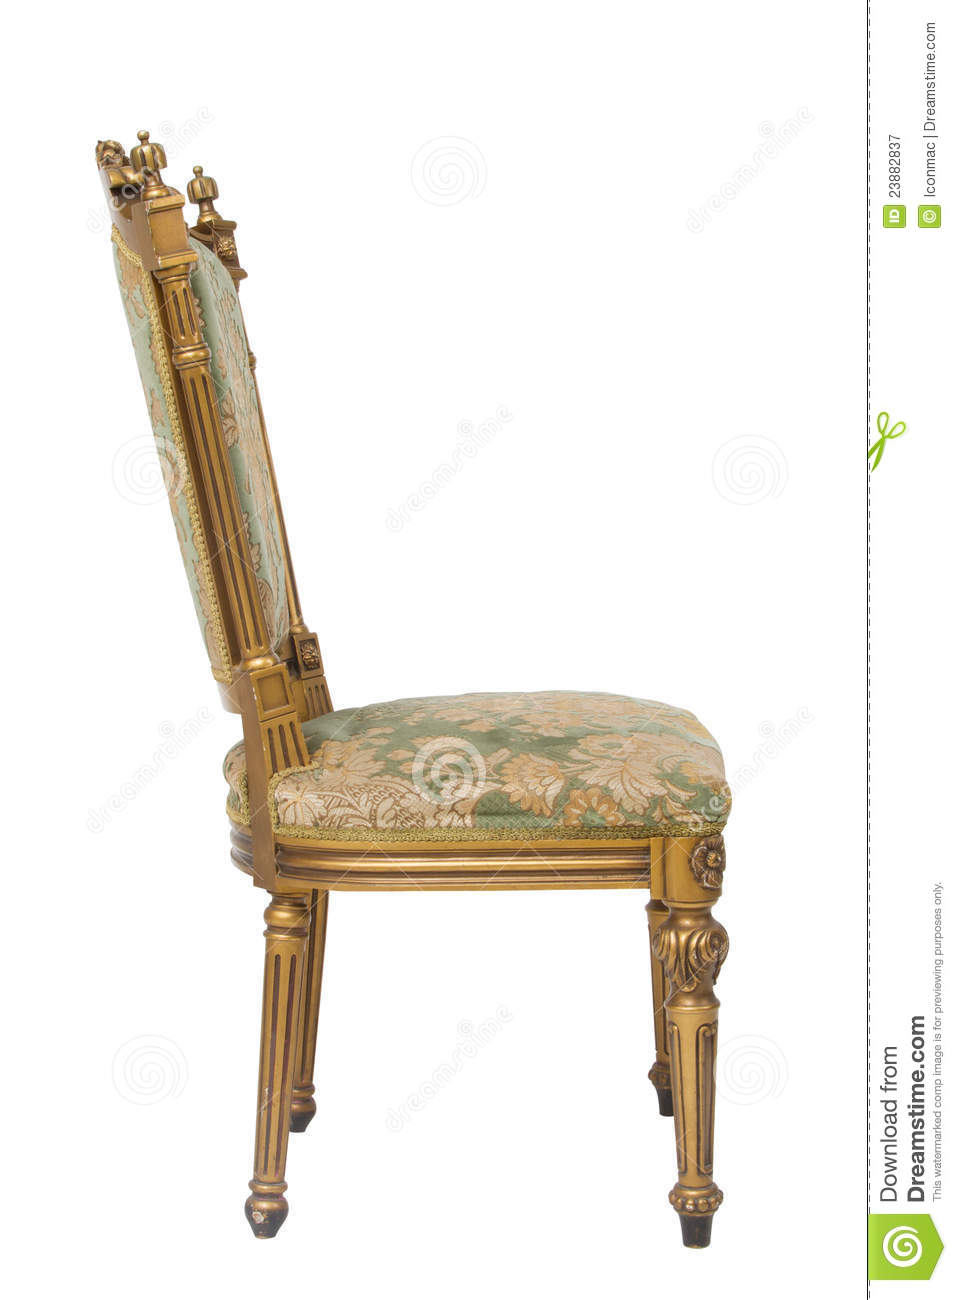 shop products img grove laurel antique chair